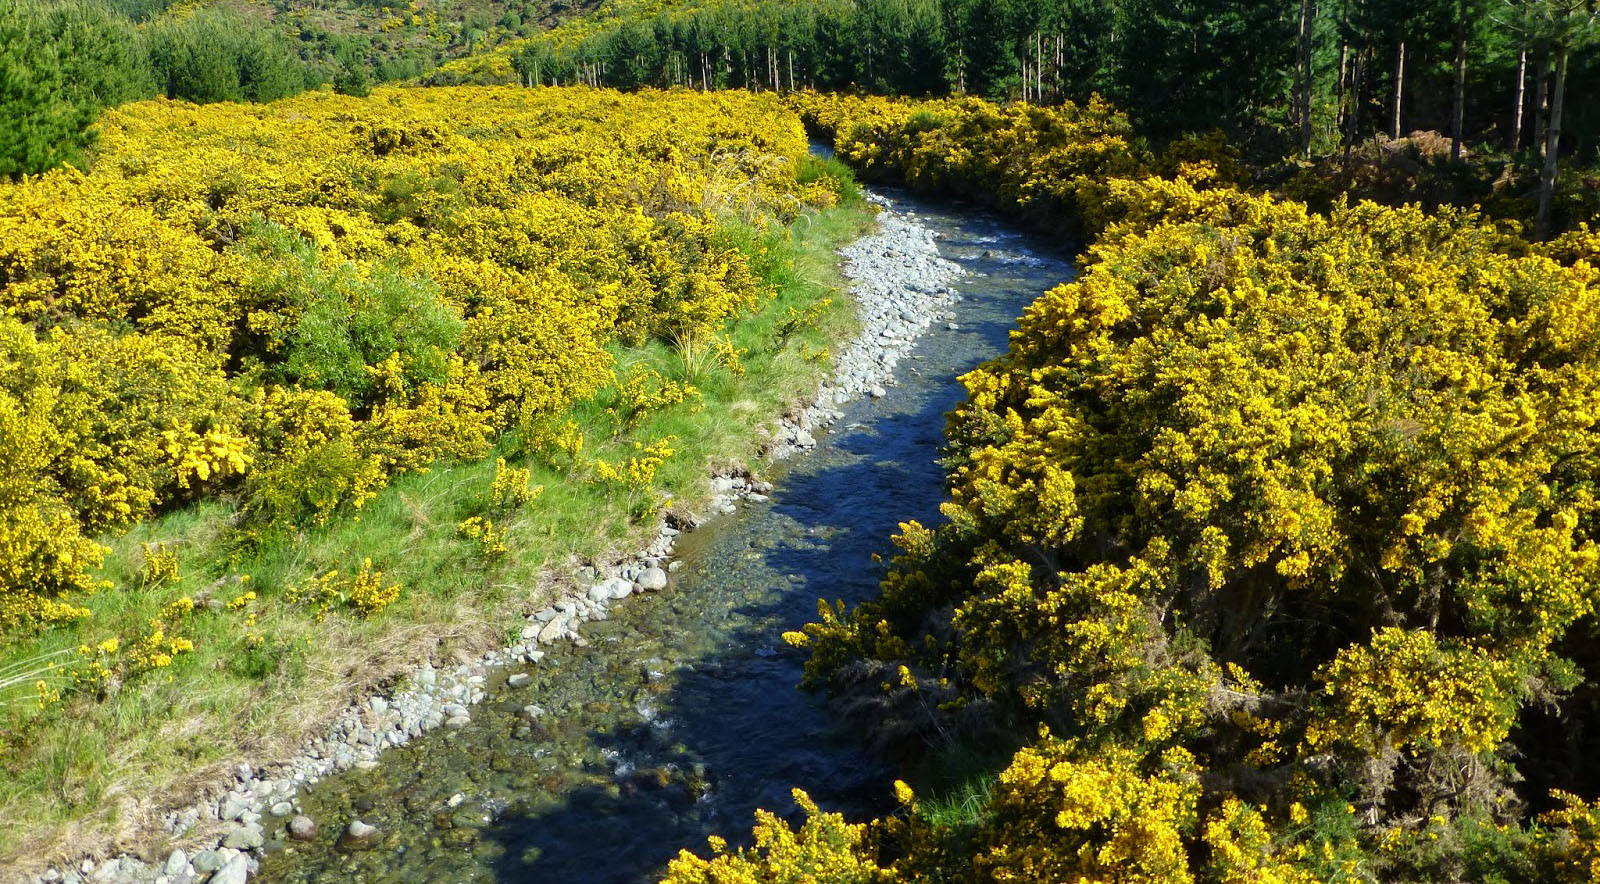 Gorse infestation along riverbed, destroying the river's natural characteristics